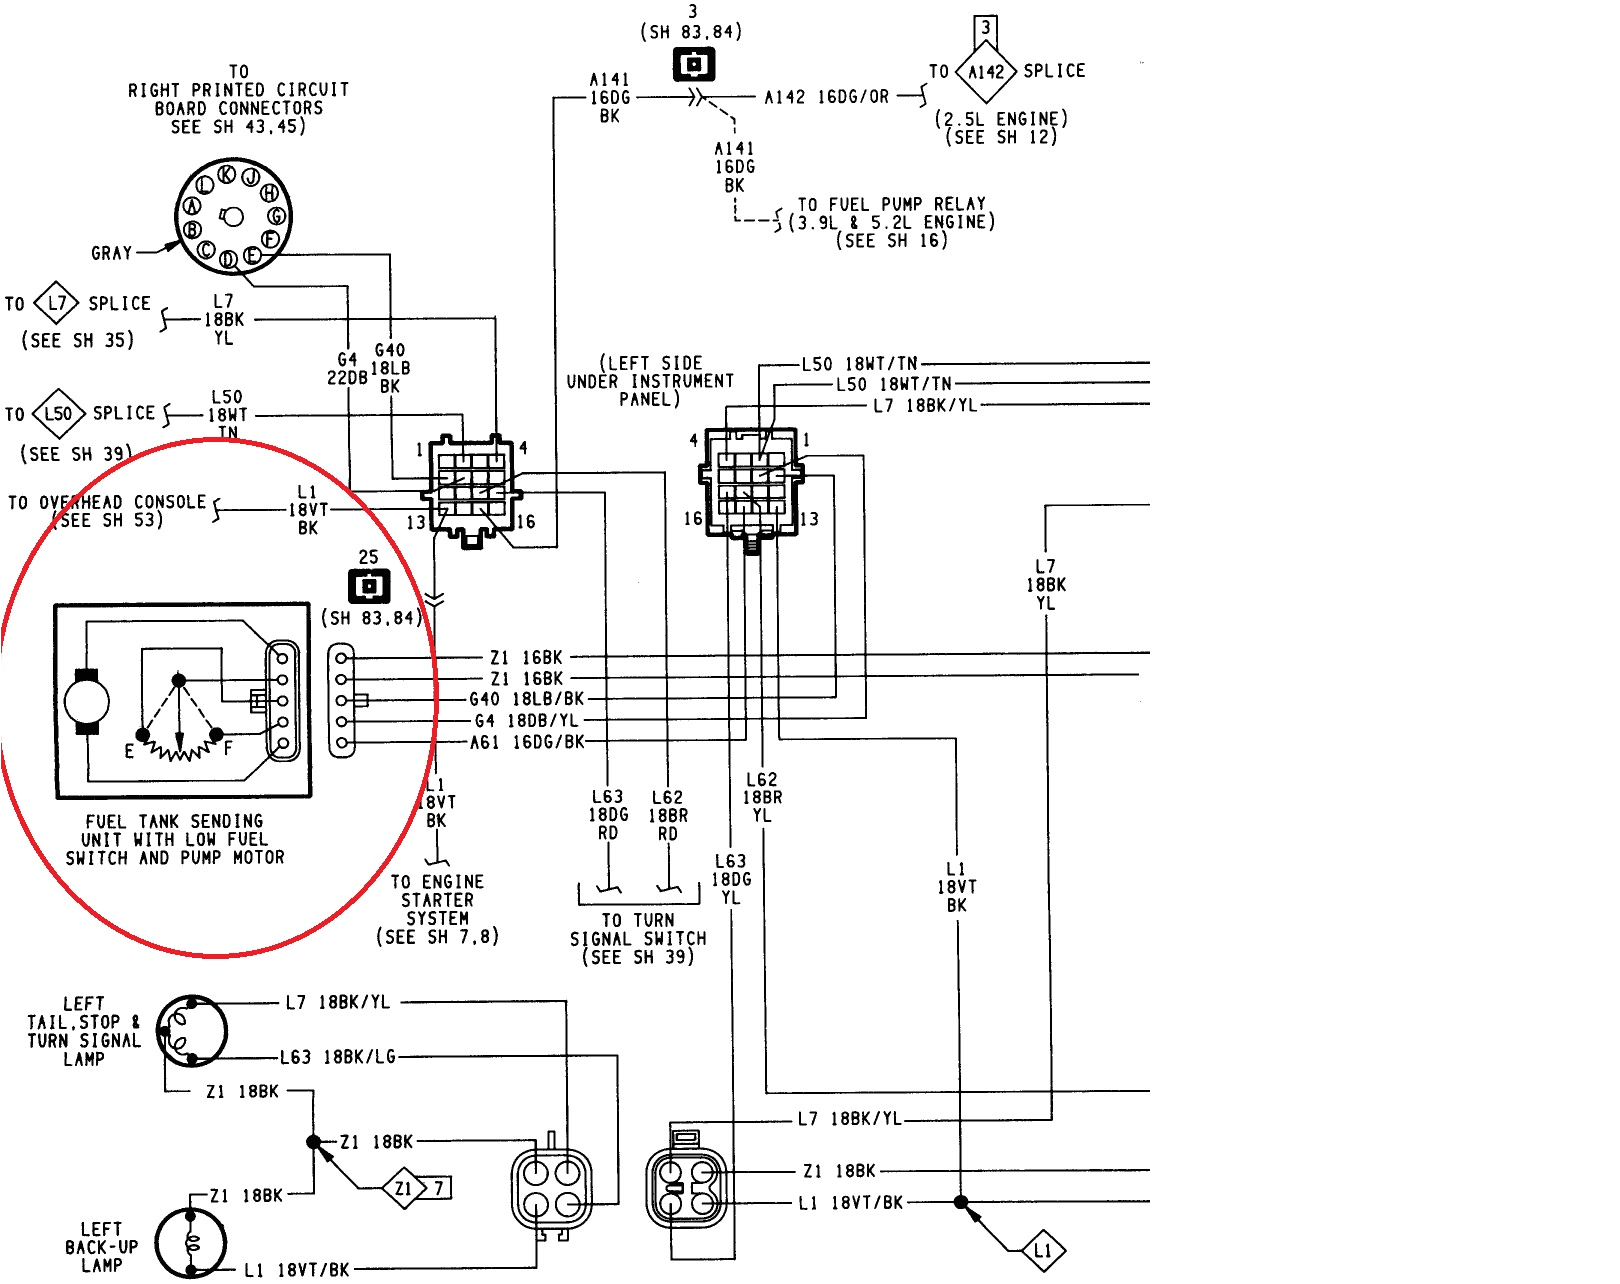 vdo rai wiring diagram data schematic diagramfuel gauge wiring diagram diamante 12